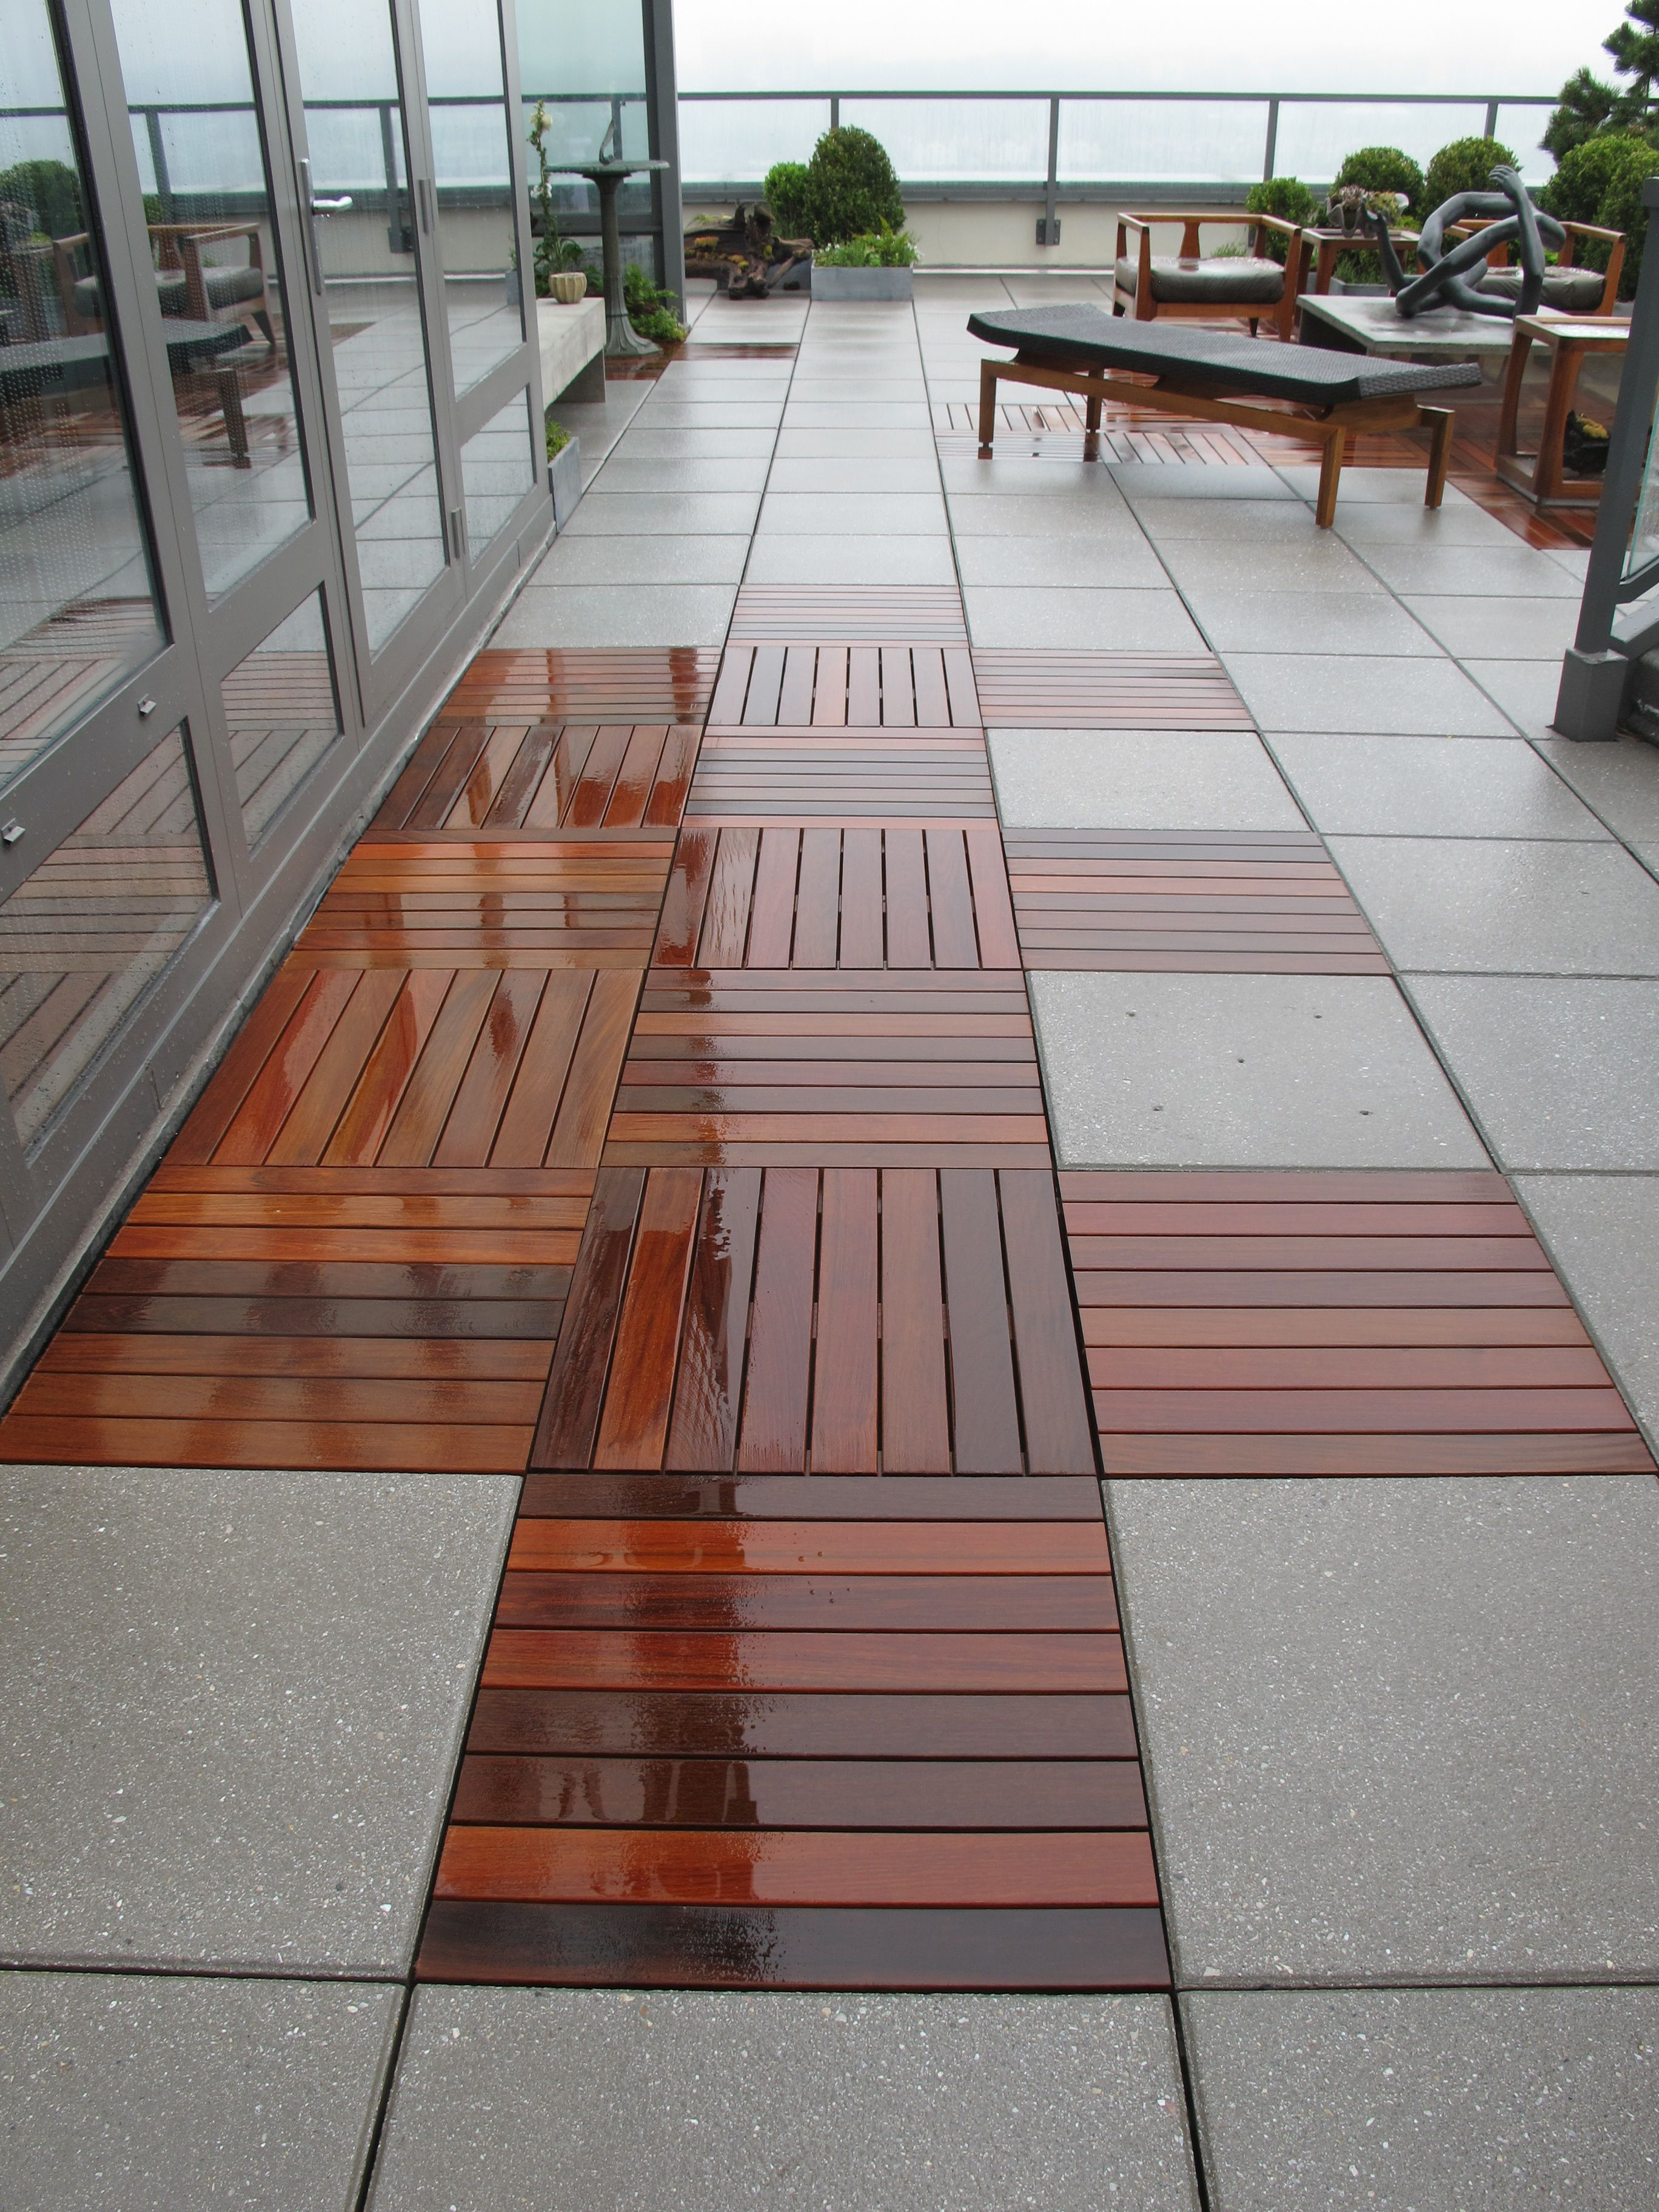 concrete pavers and wood decking at the Kips Bay Showhouse